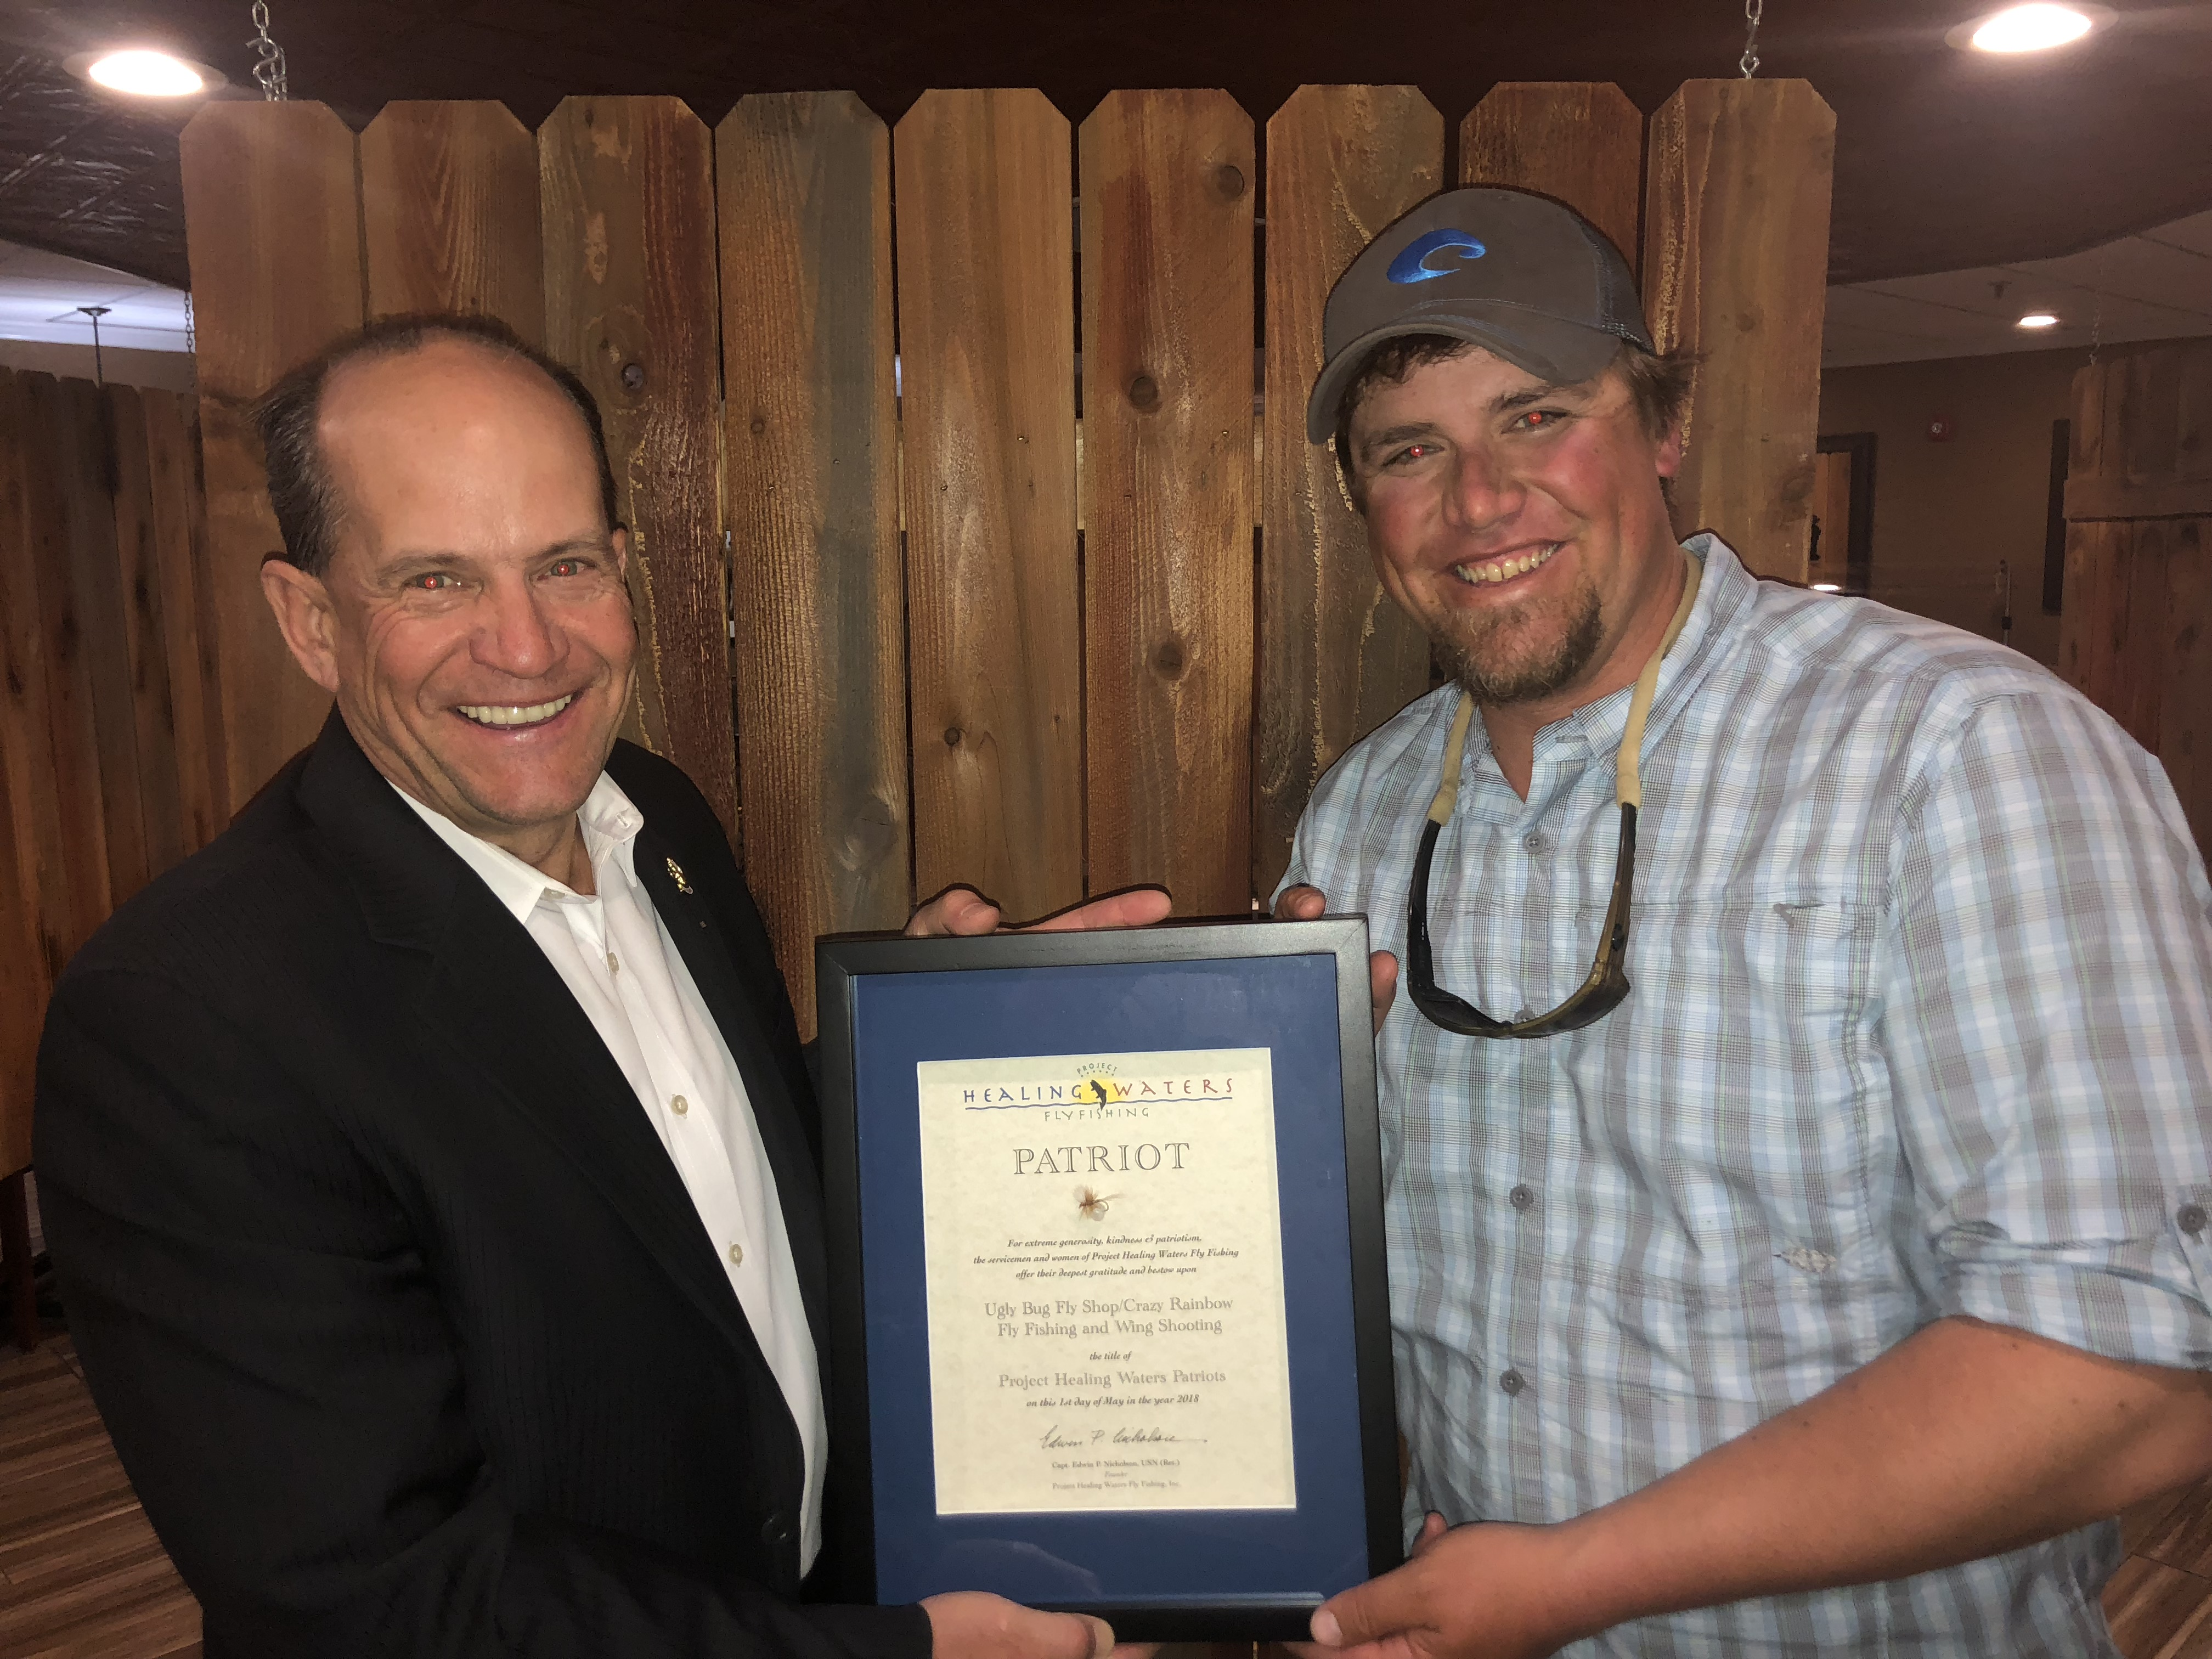 Patriot Award Presented to the Ugly Bug Fly Shop/Crazy Rainbow Fly Fishing and Wing Shooting